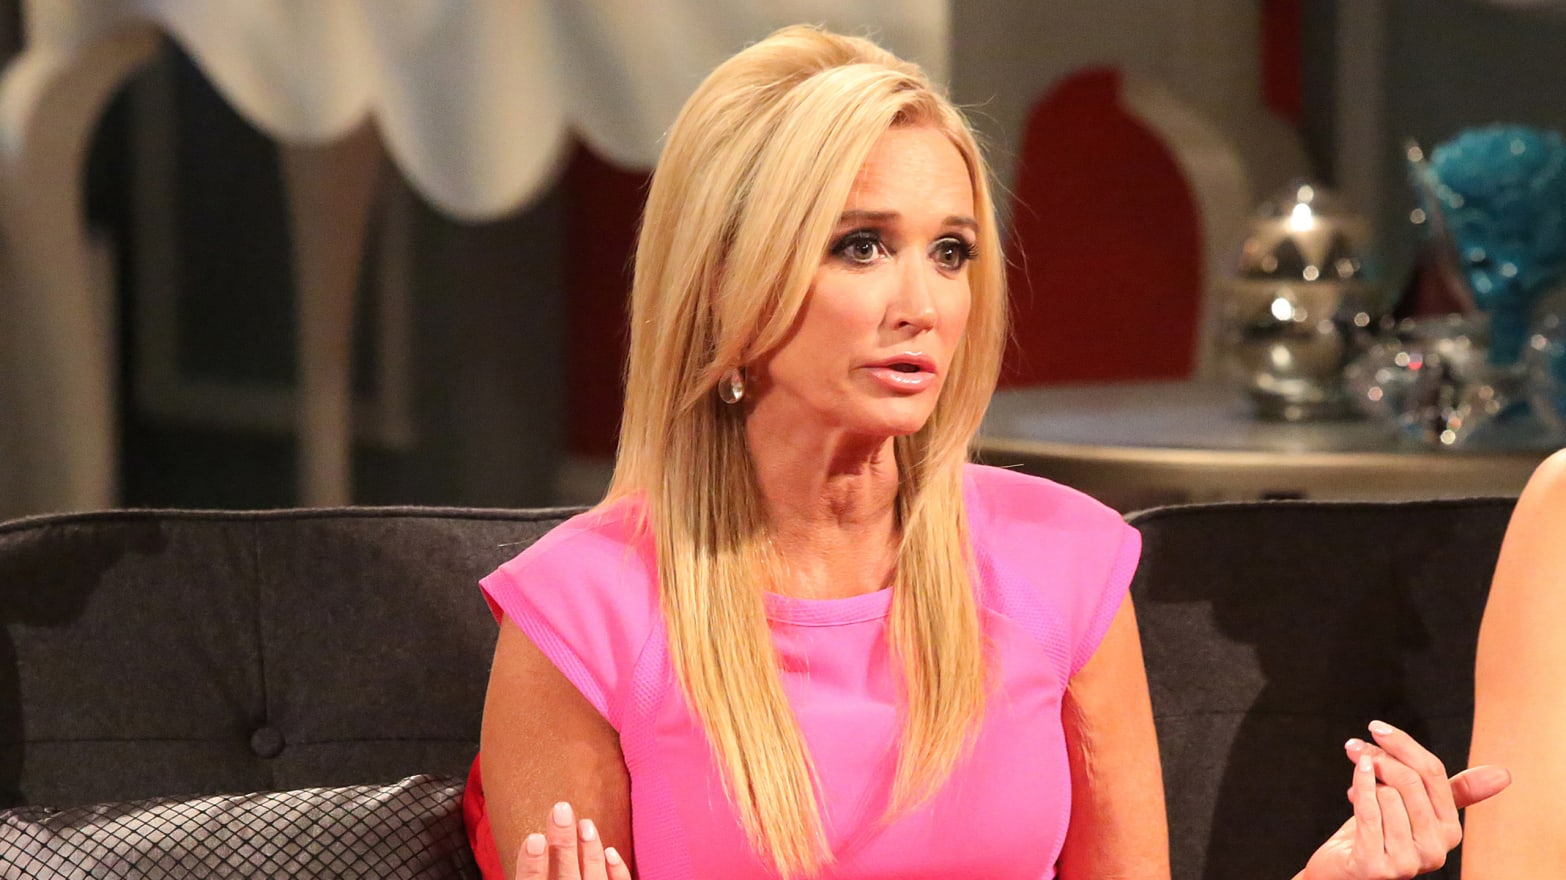 The Fall of Kim Richards, Star of 'Real Housewives of